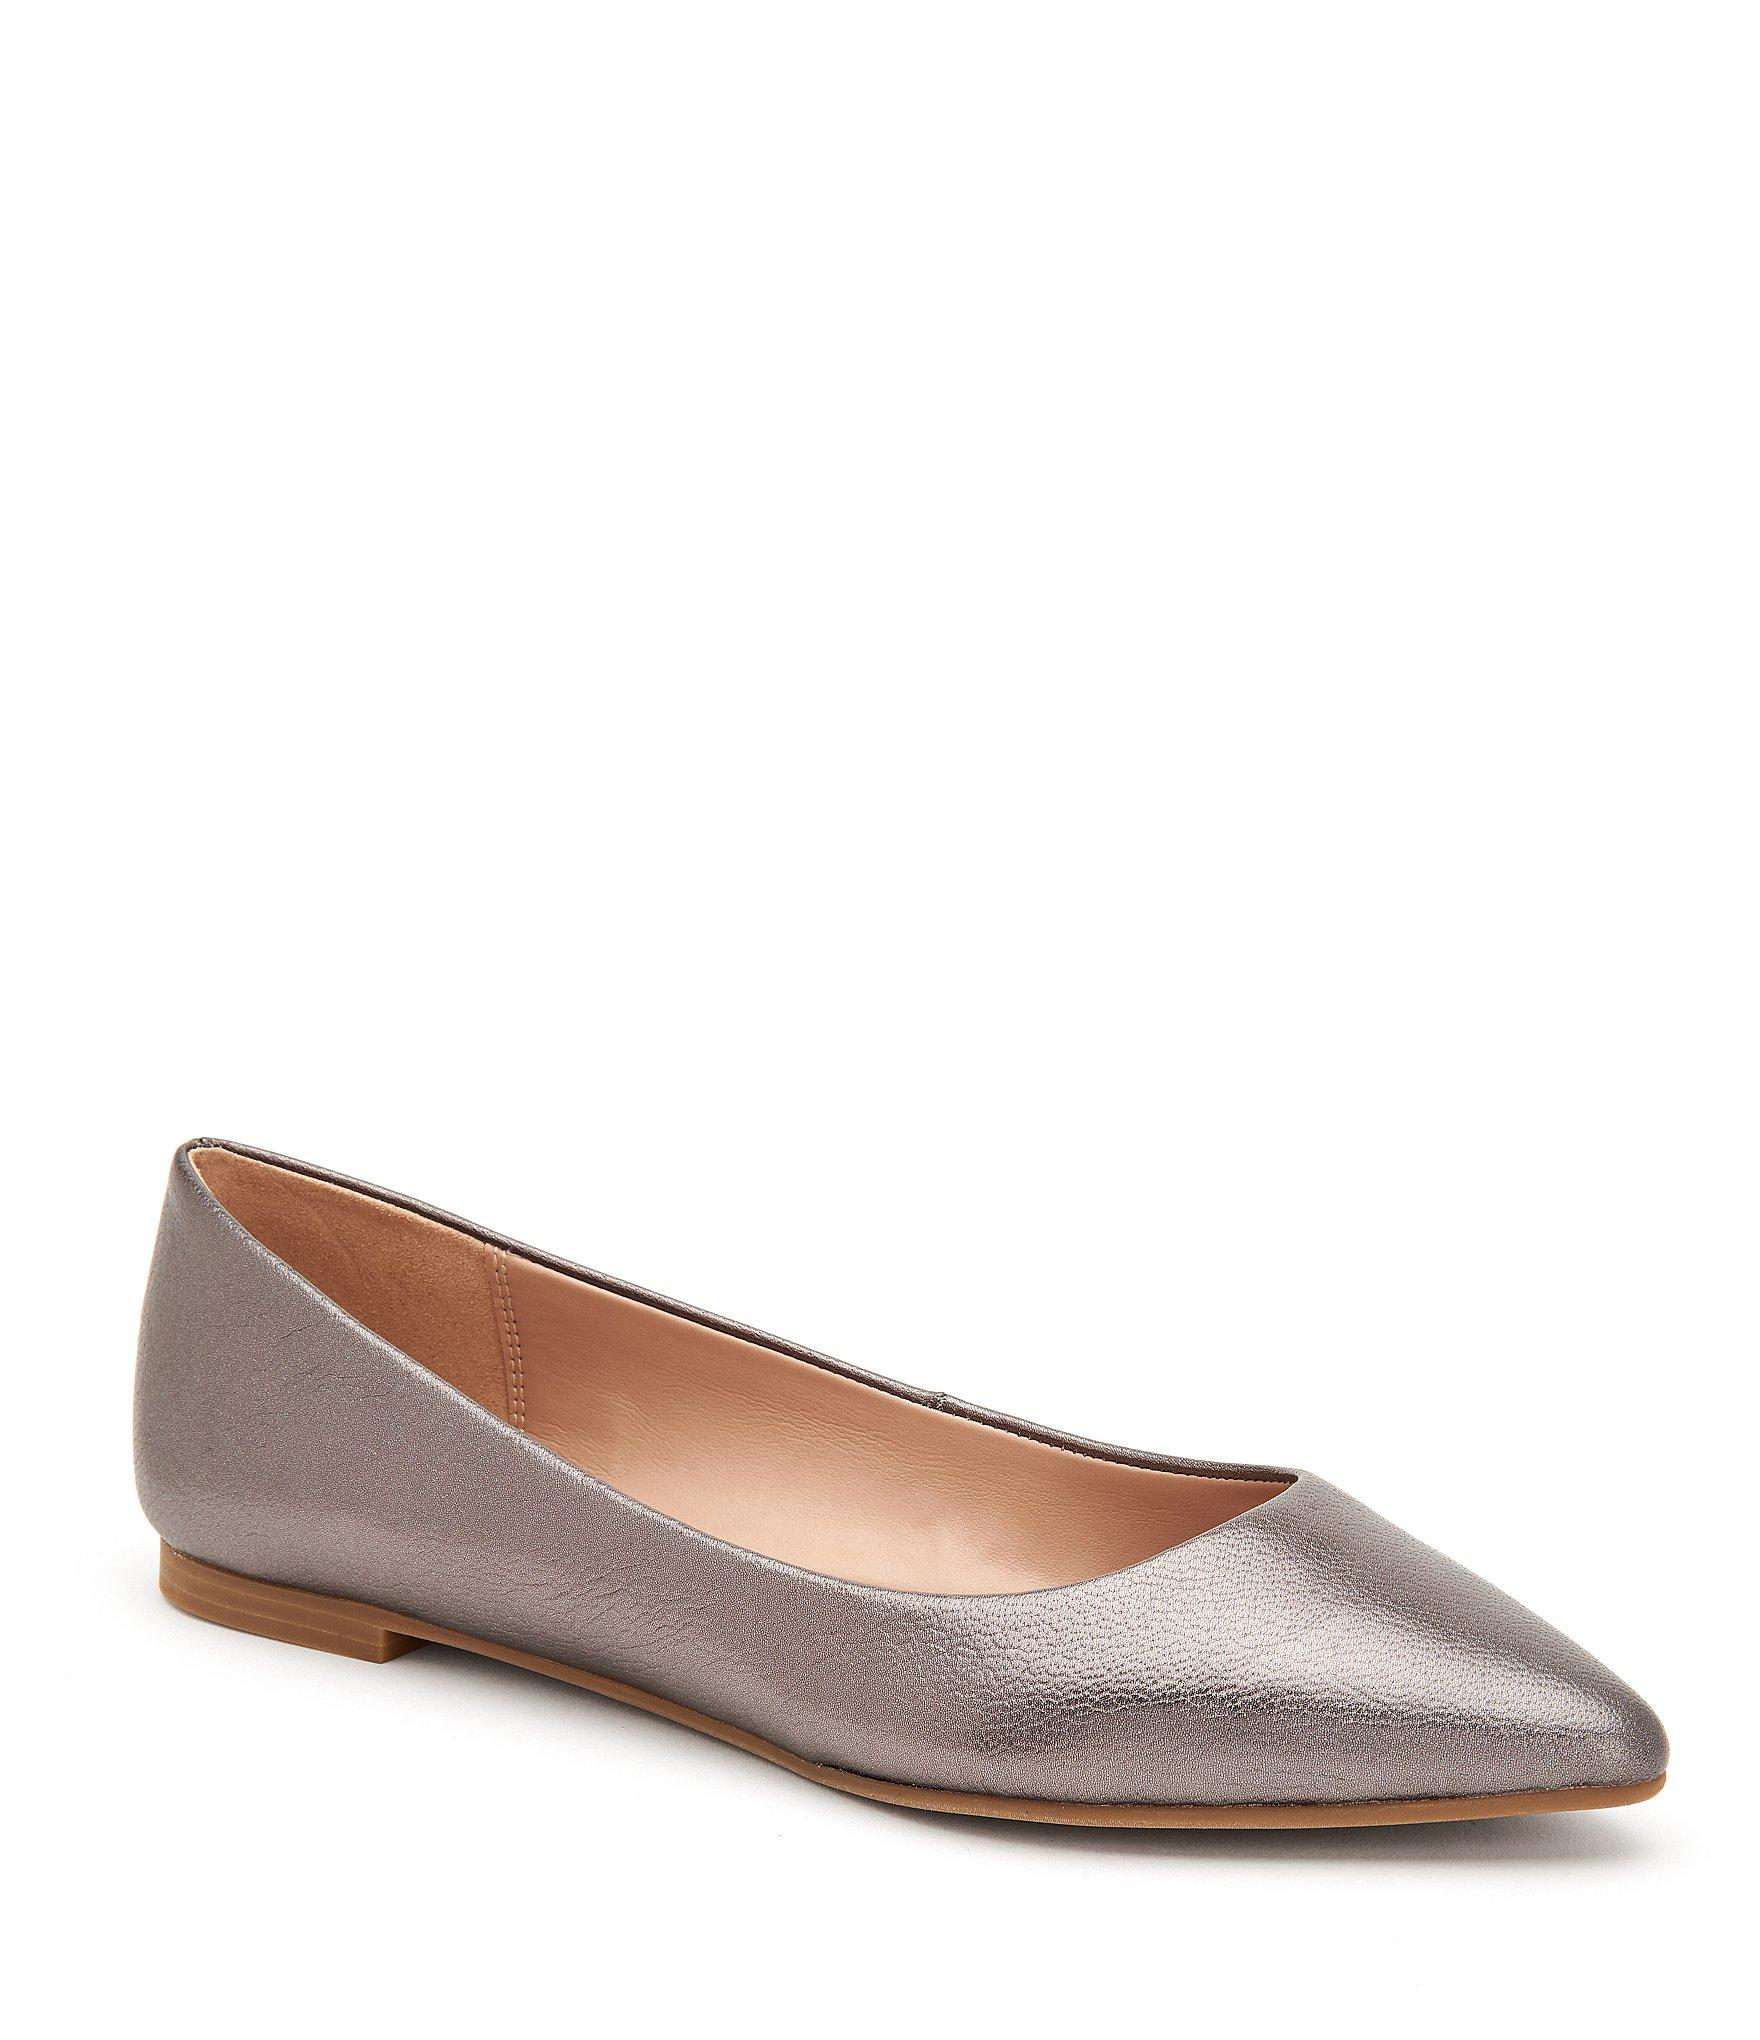 c286cb71a37d15 BCBGeneration. Women s Millie Metallic Leather Flats